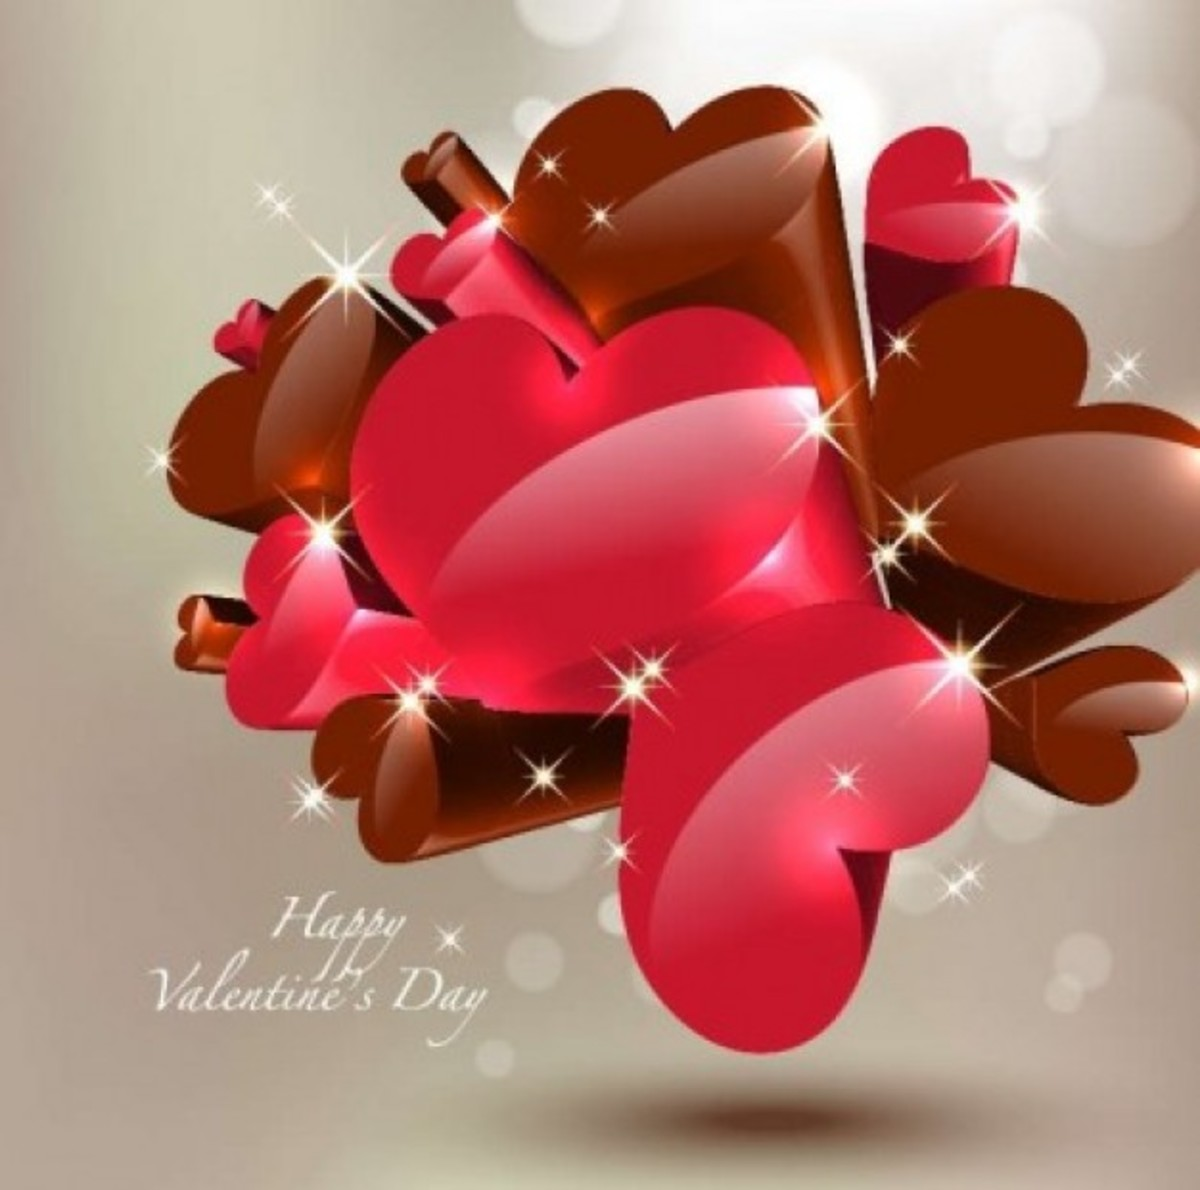 Happy Valentine's Day with Chocolate Hearts